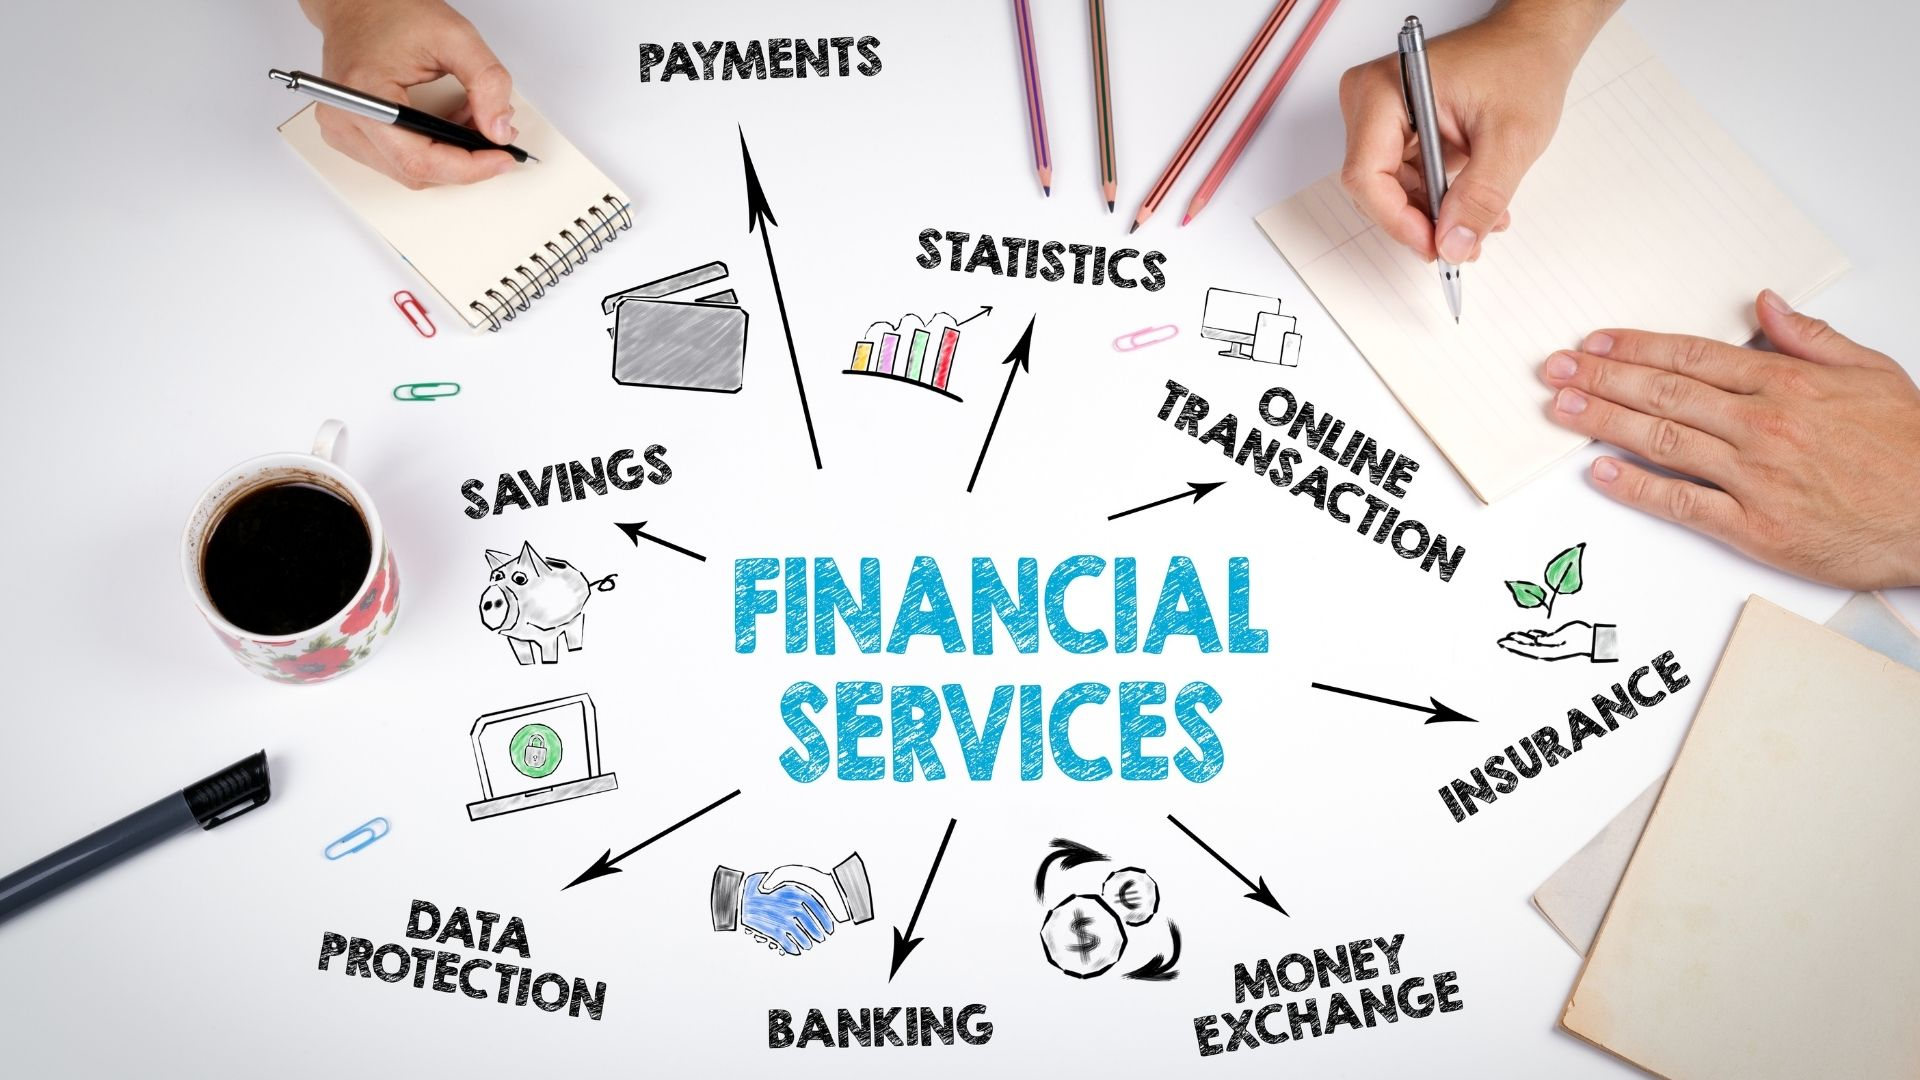 The chase is on for more alternative data within financial services